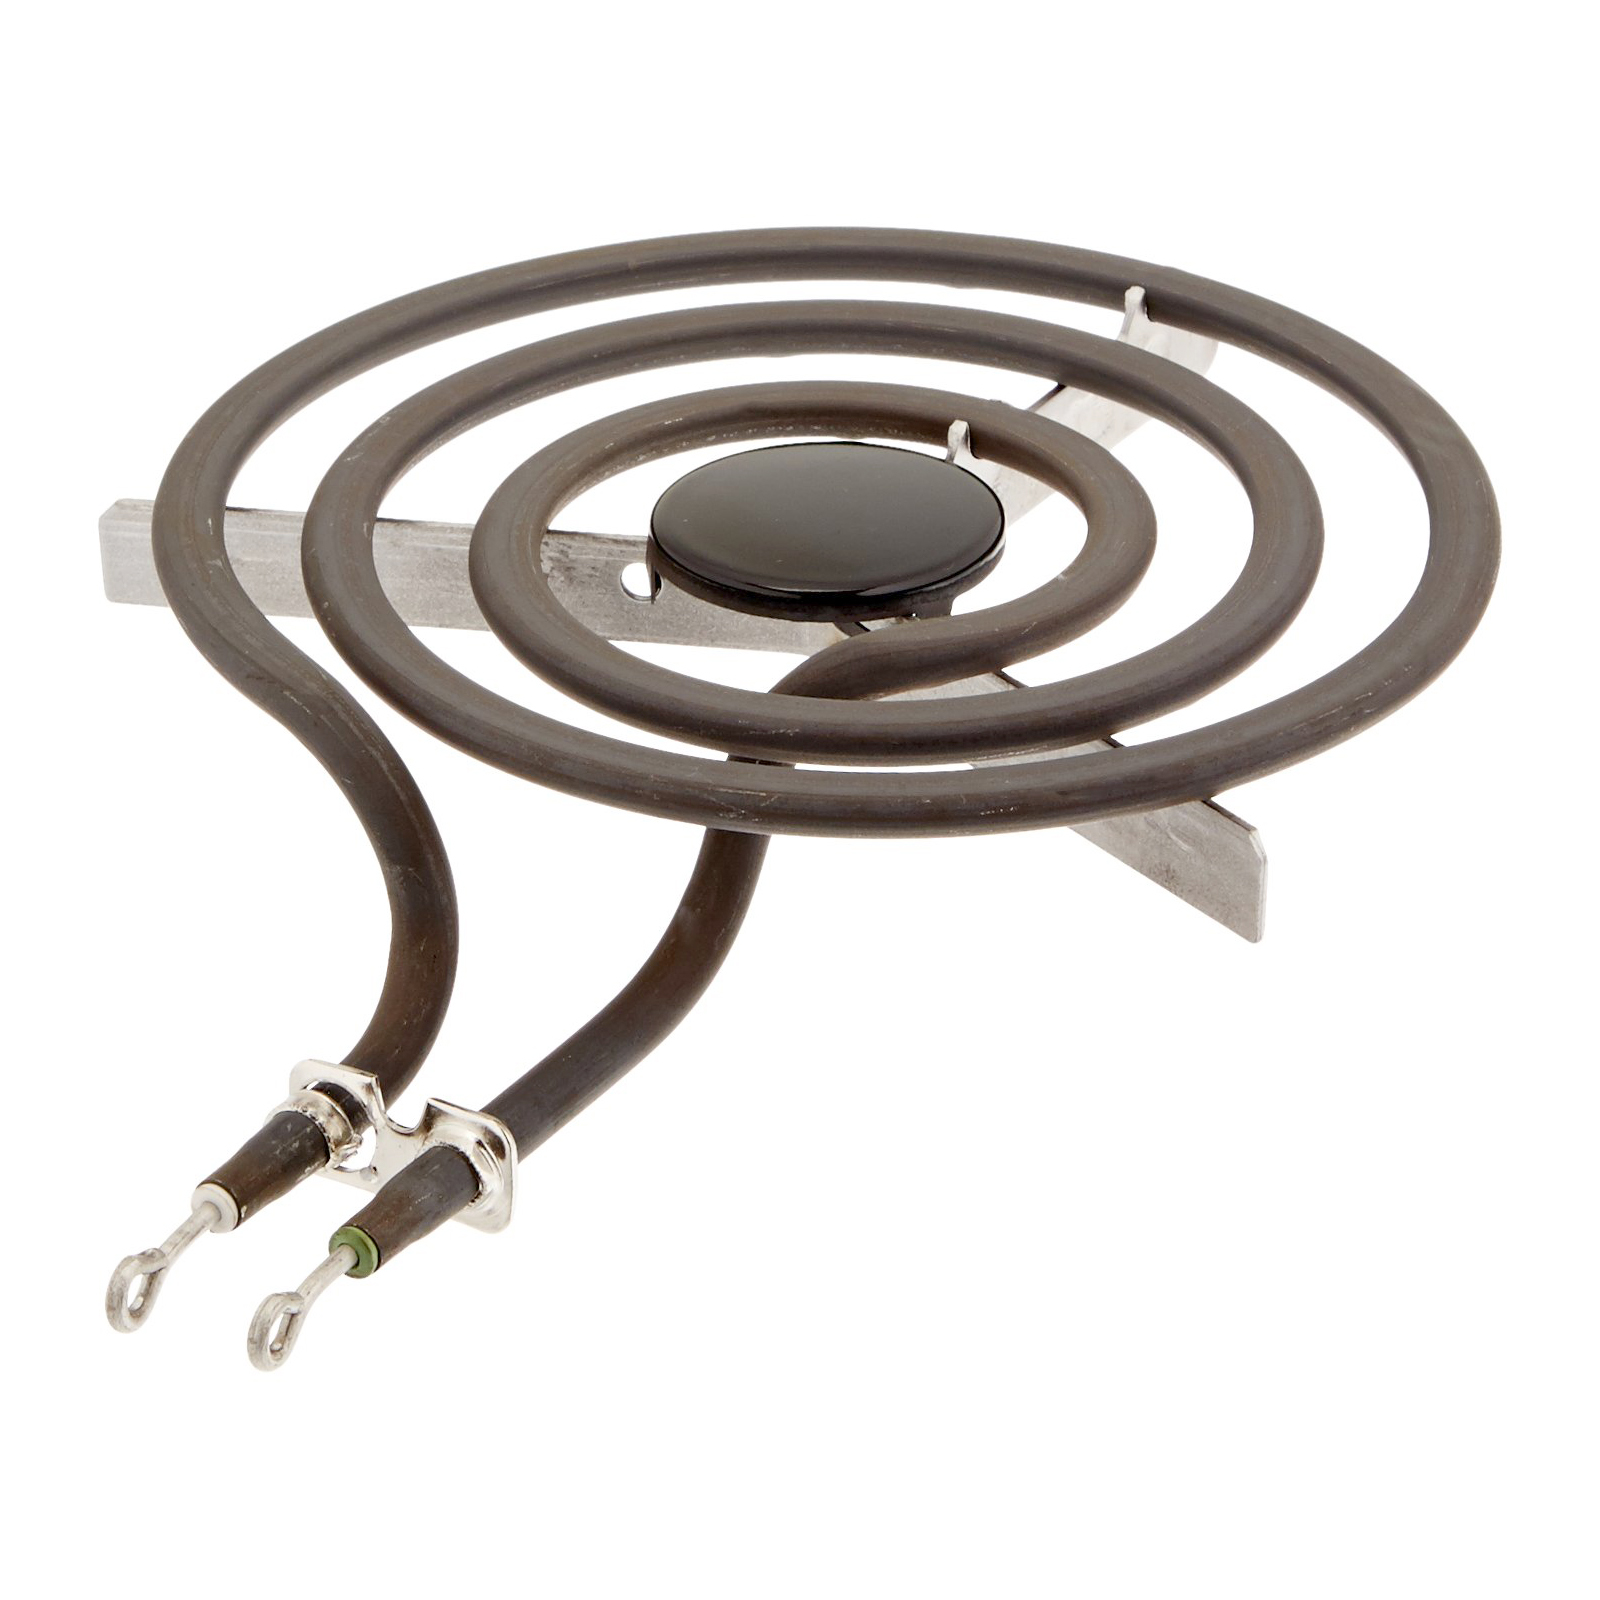 Tappan 37-1048-66-05 Oven Broil Element